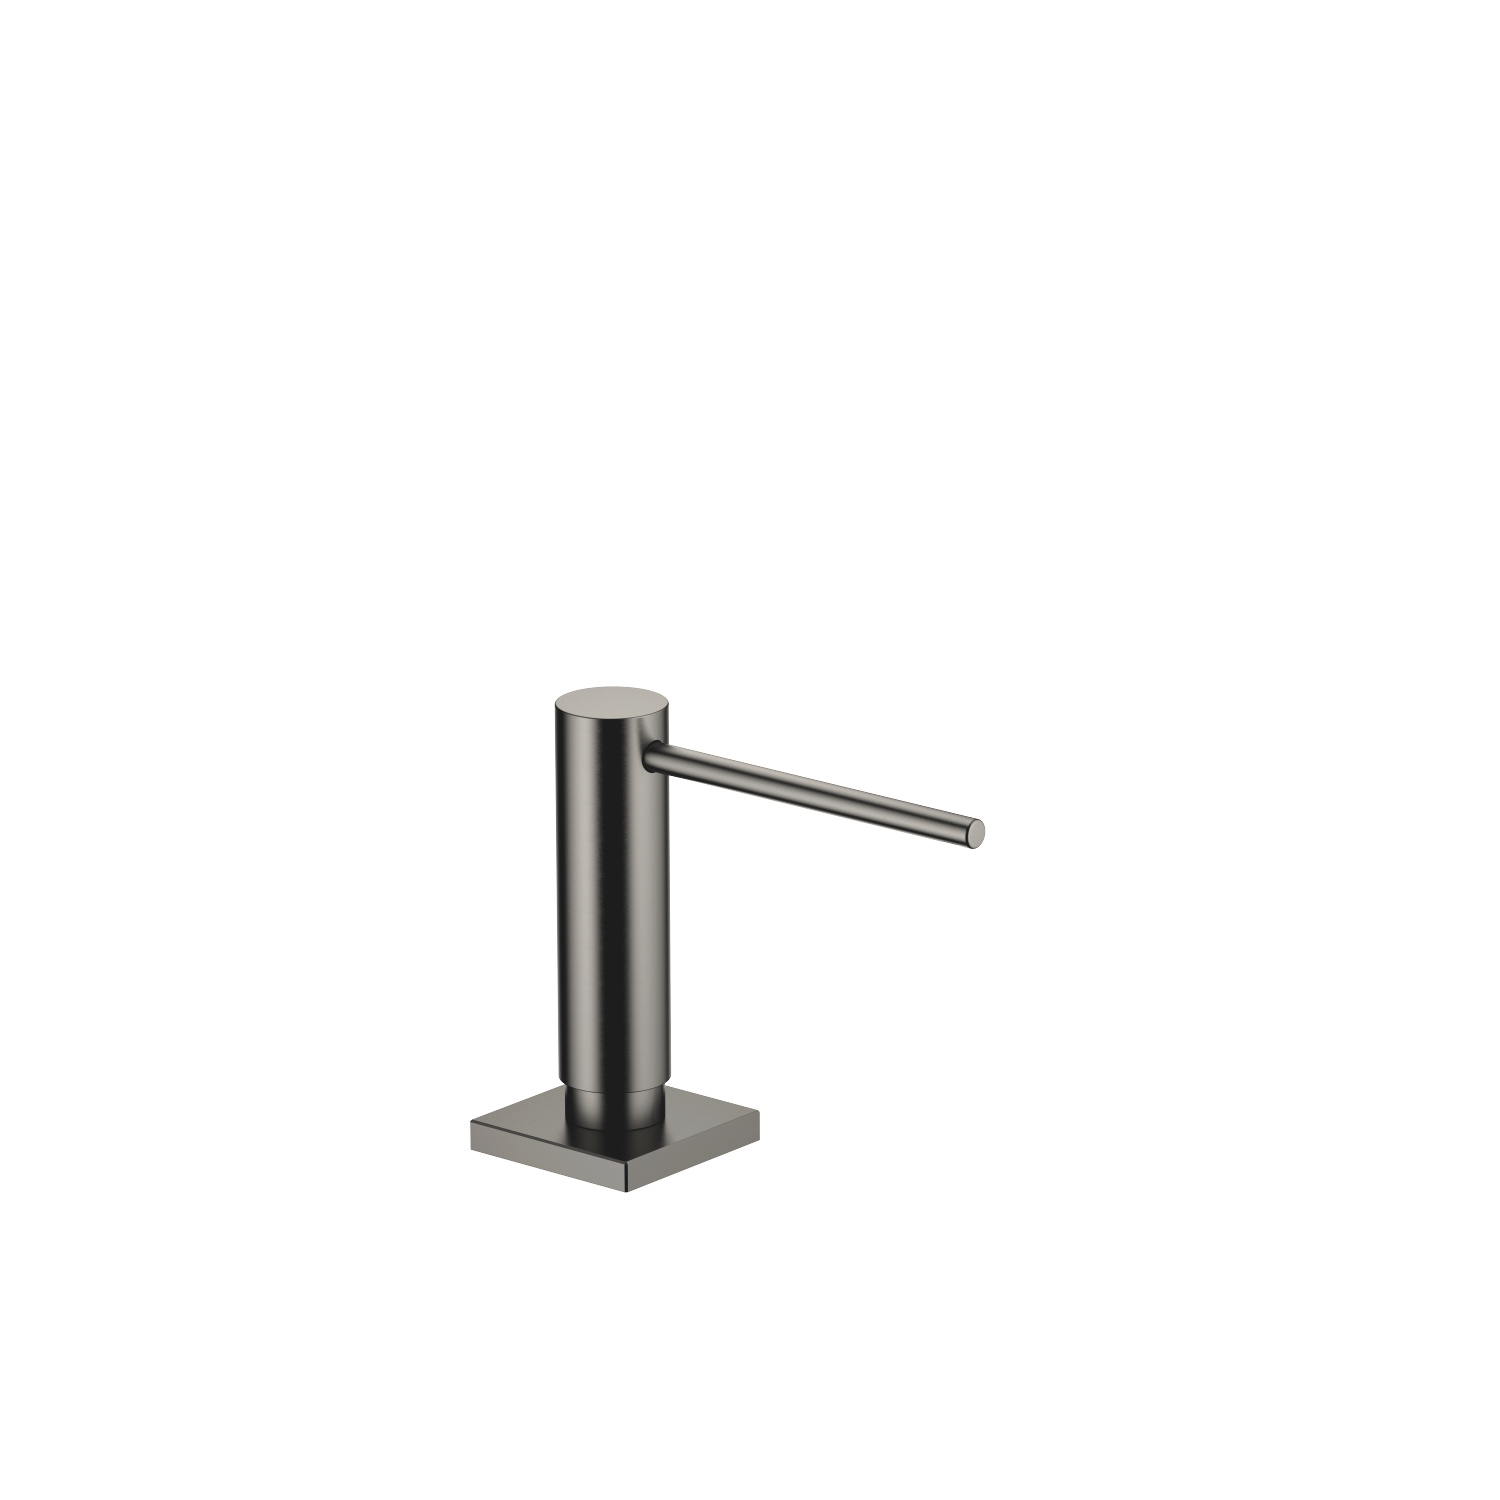 Dispenser with rosette - Dark Platinum matt - 82 439 970-99